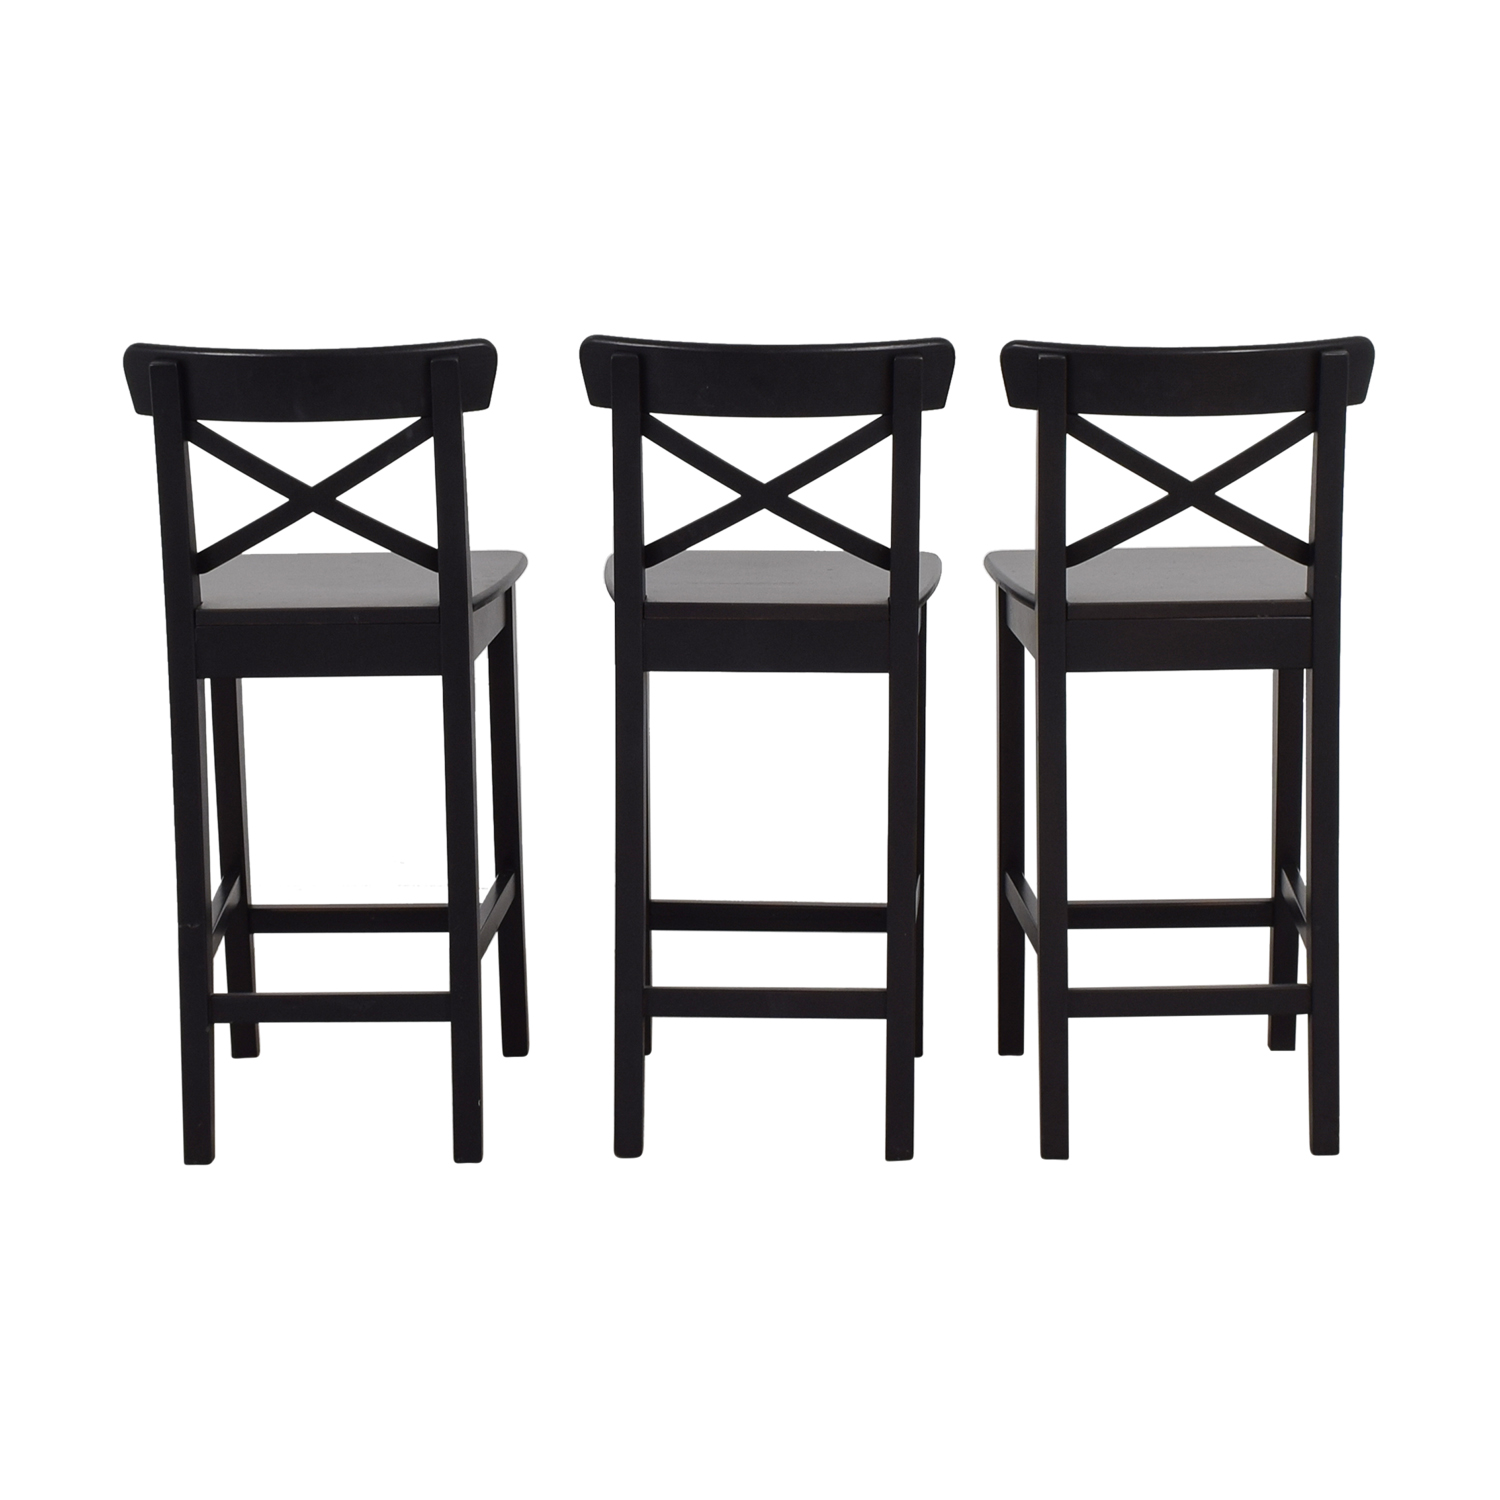 thumb max stool stools models bar ikea